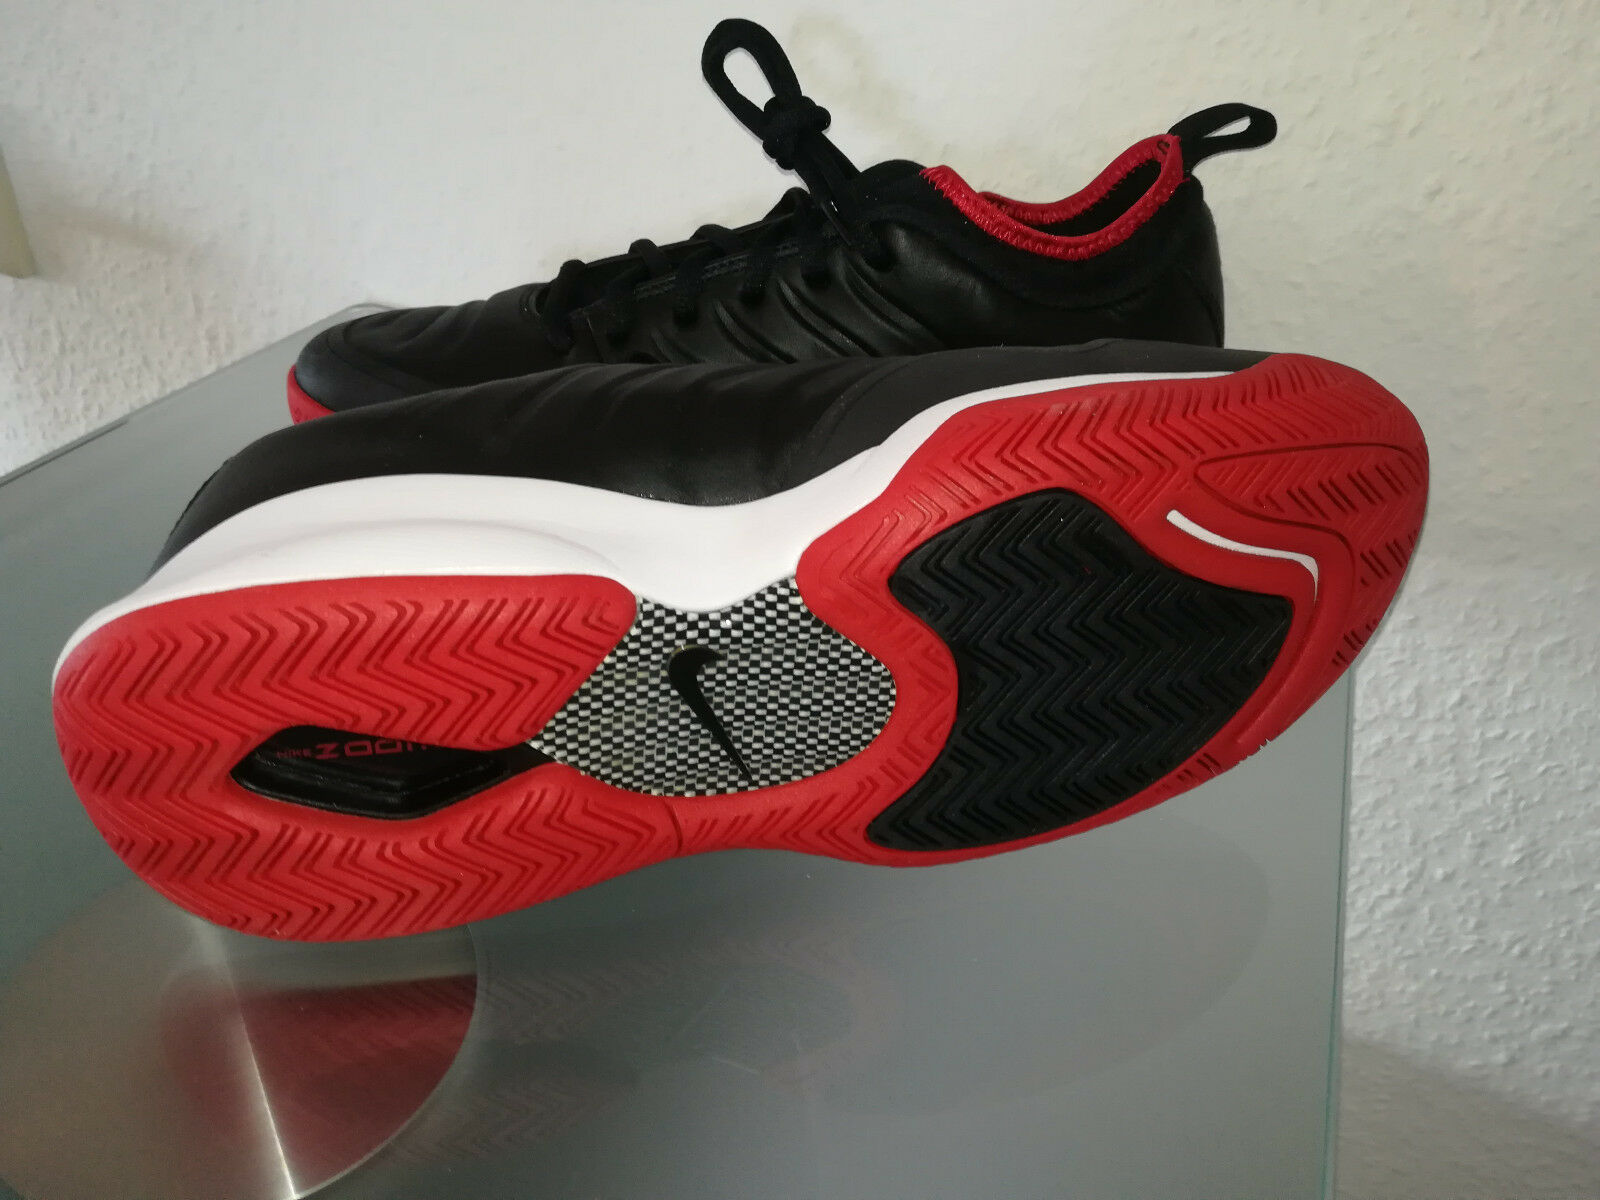 Nike Nike Nike Air Zoom oscillate 918195-100 Hommes NIKE Messieurs-Tennis Chaussure Taille 40 def652